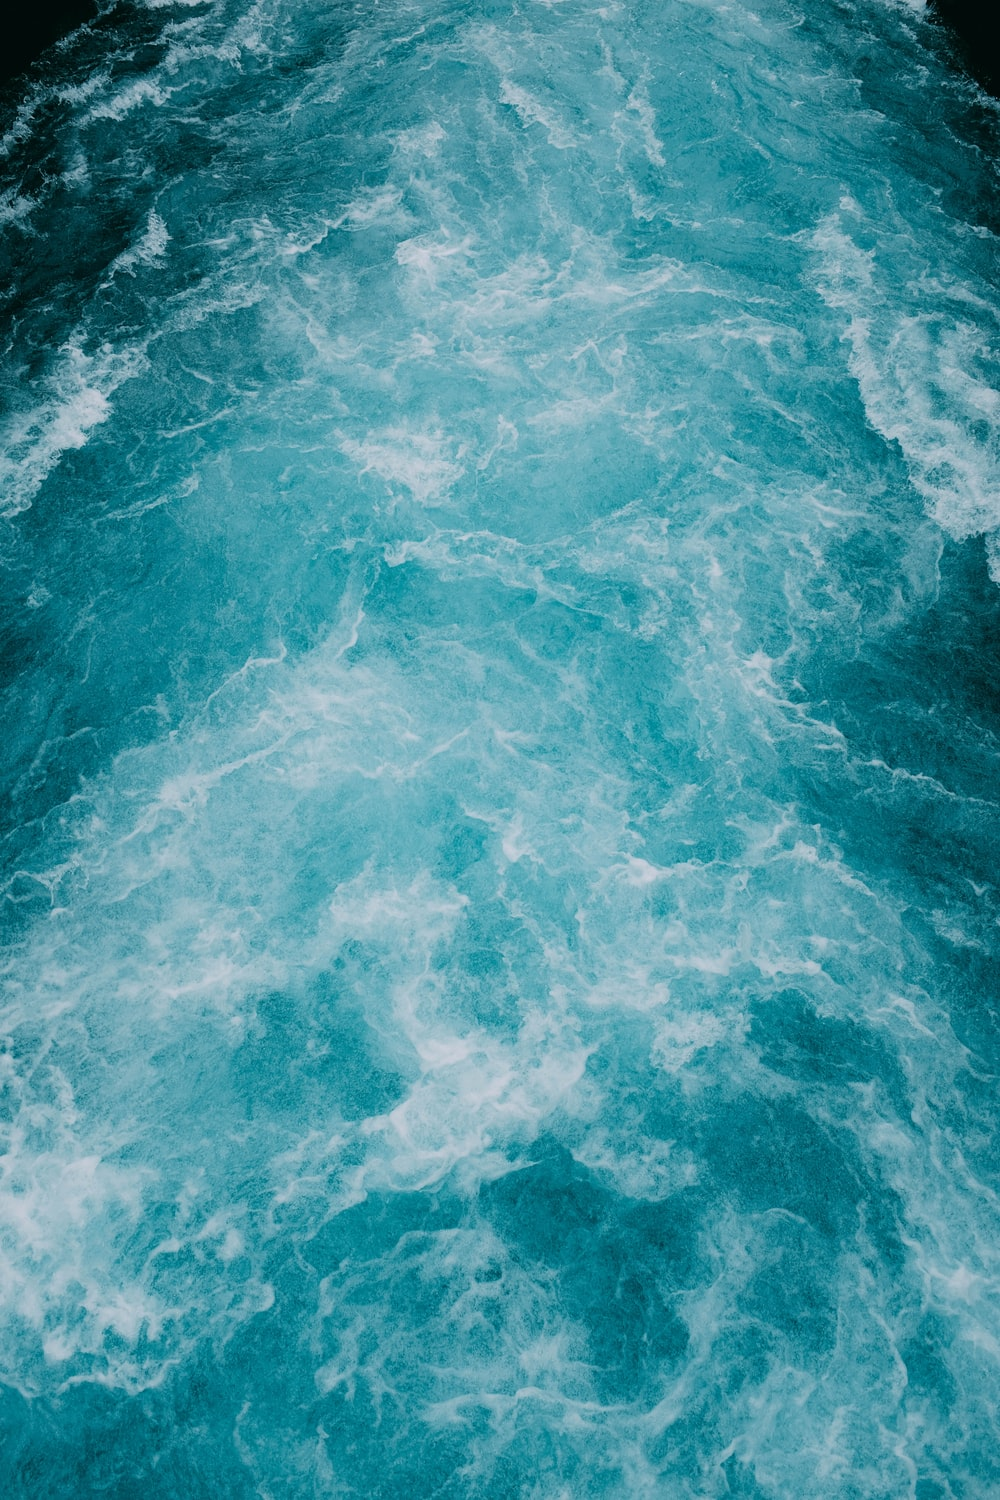 water pictures download free images on unsplash